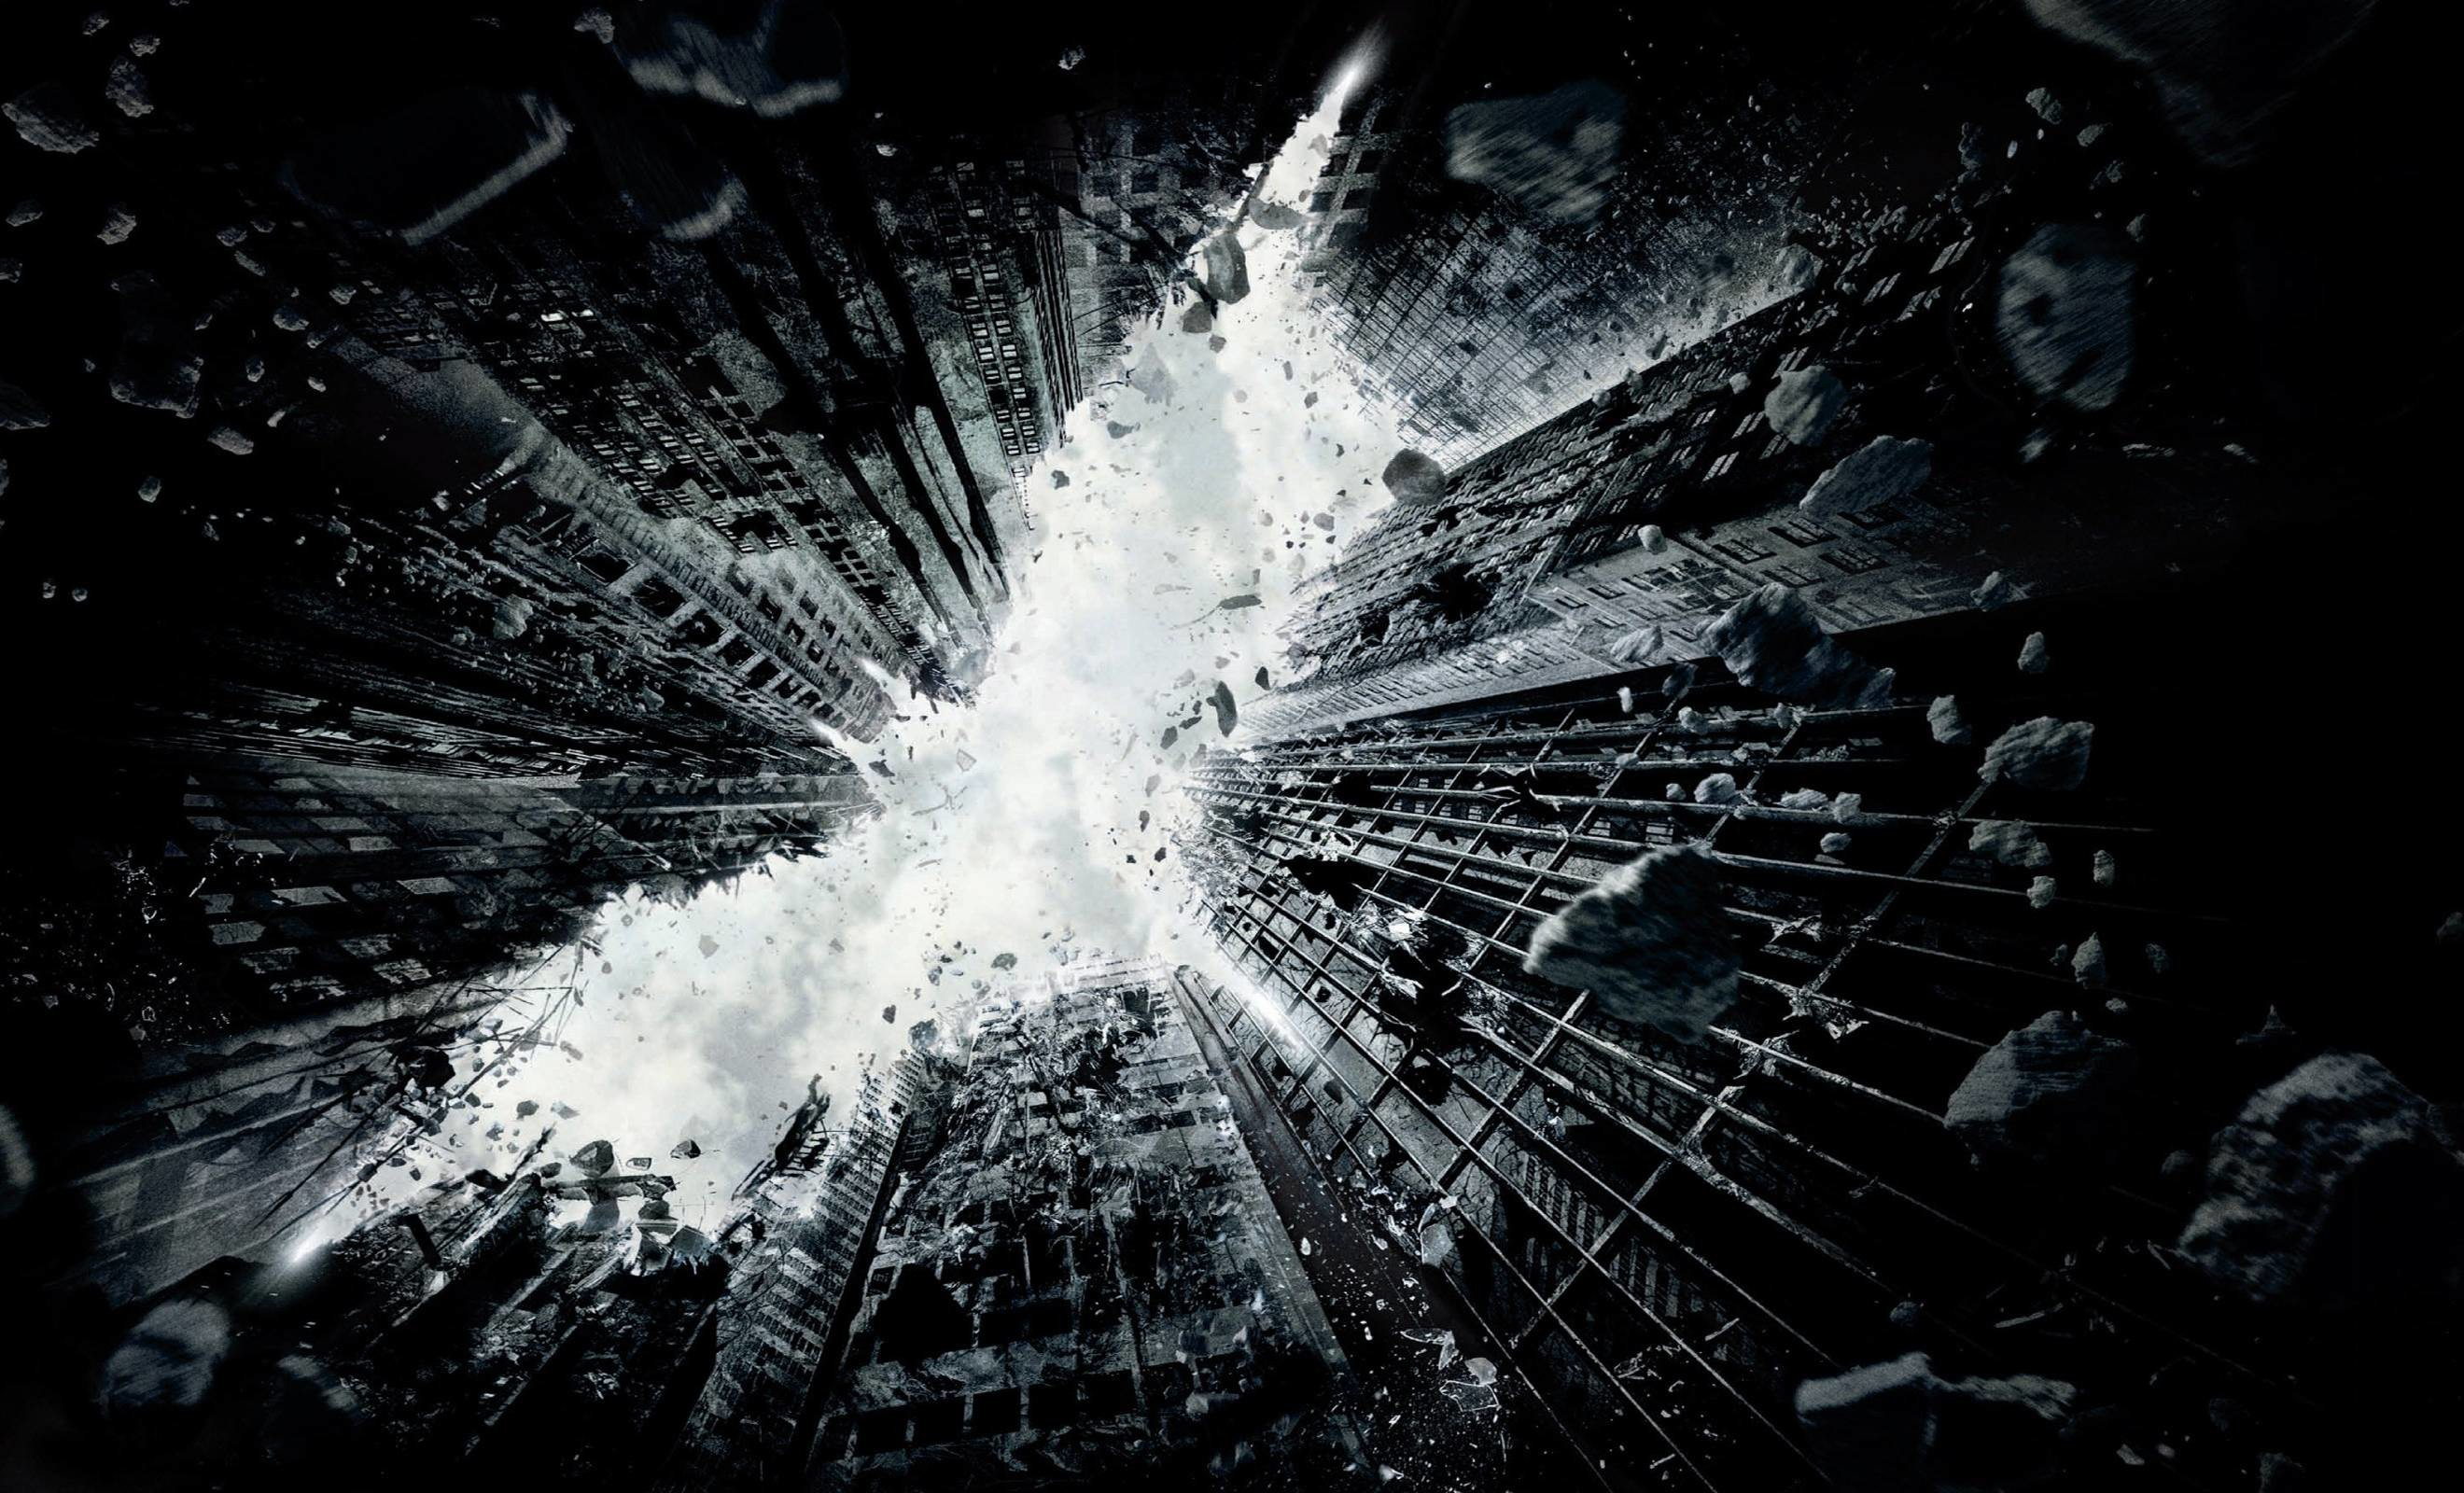 The Dark Knight Rises HD Wallpapers Desktop Backgrounds Phot 63860 .